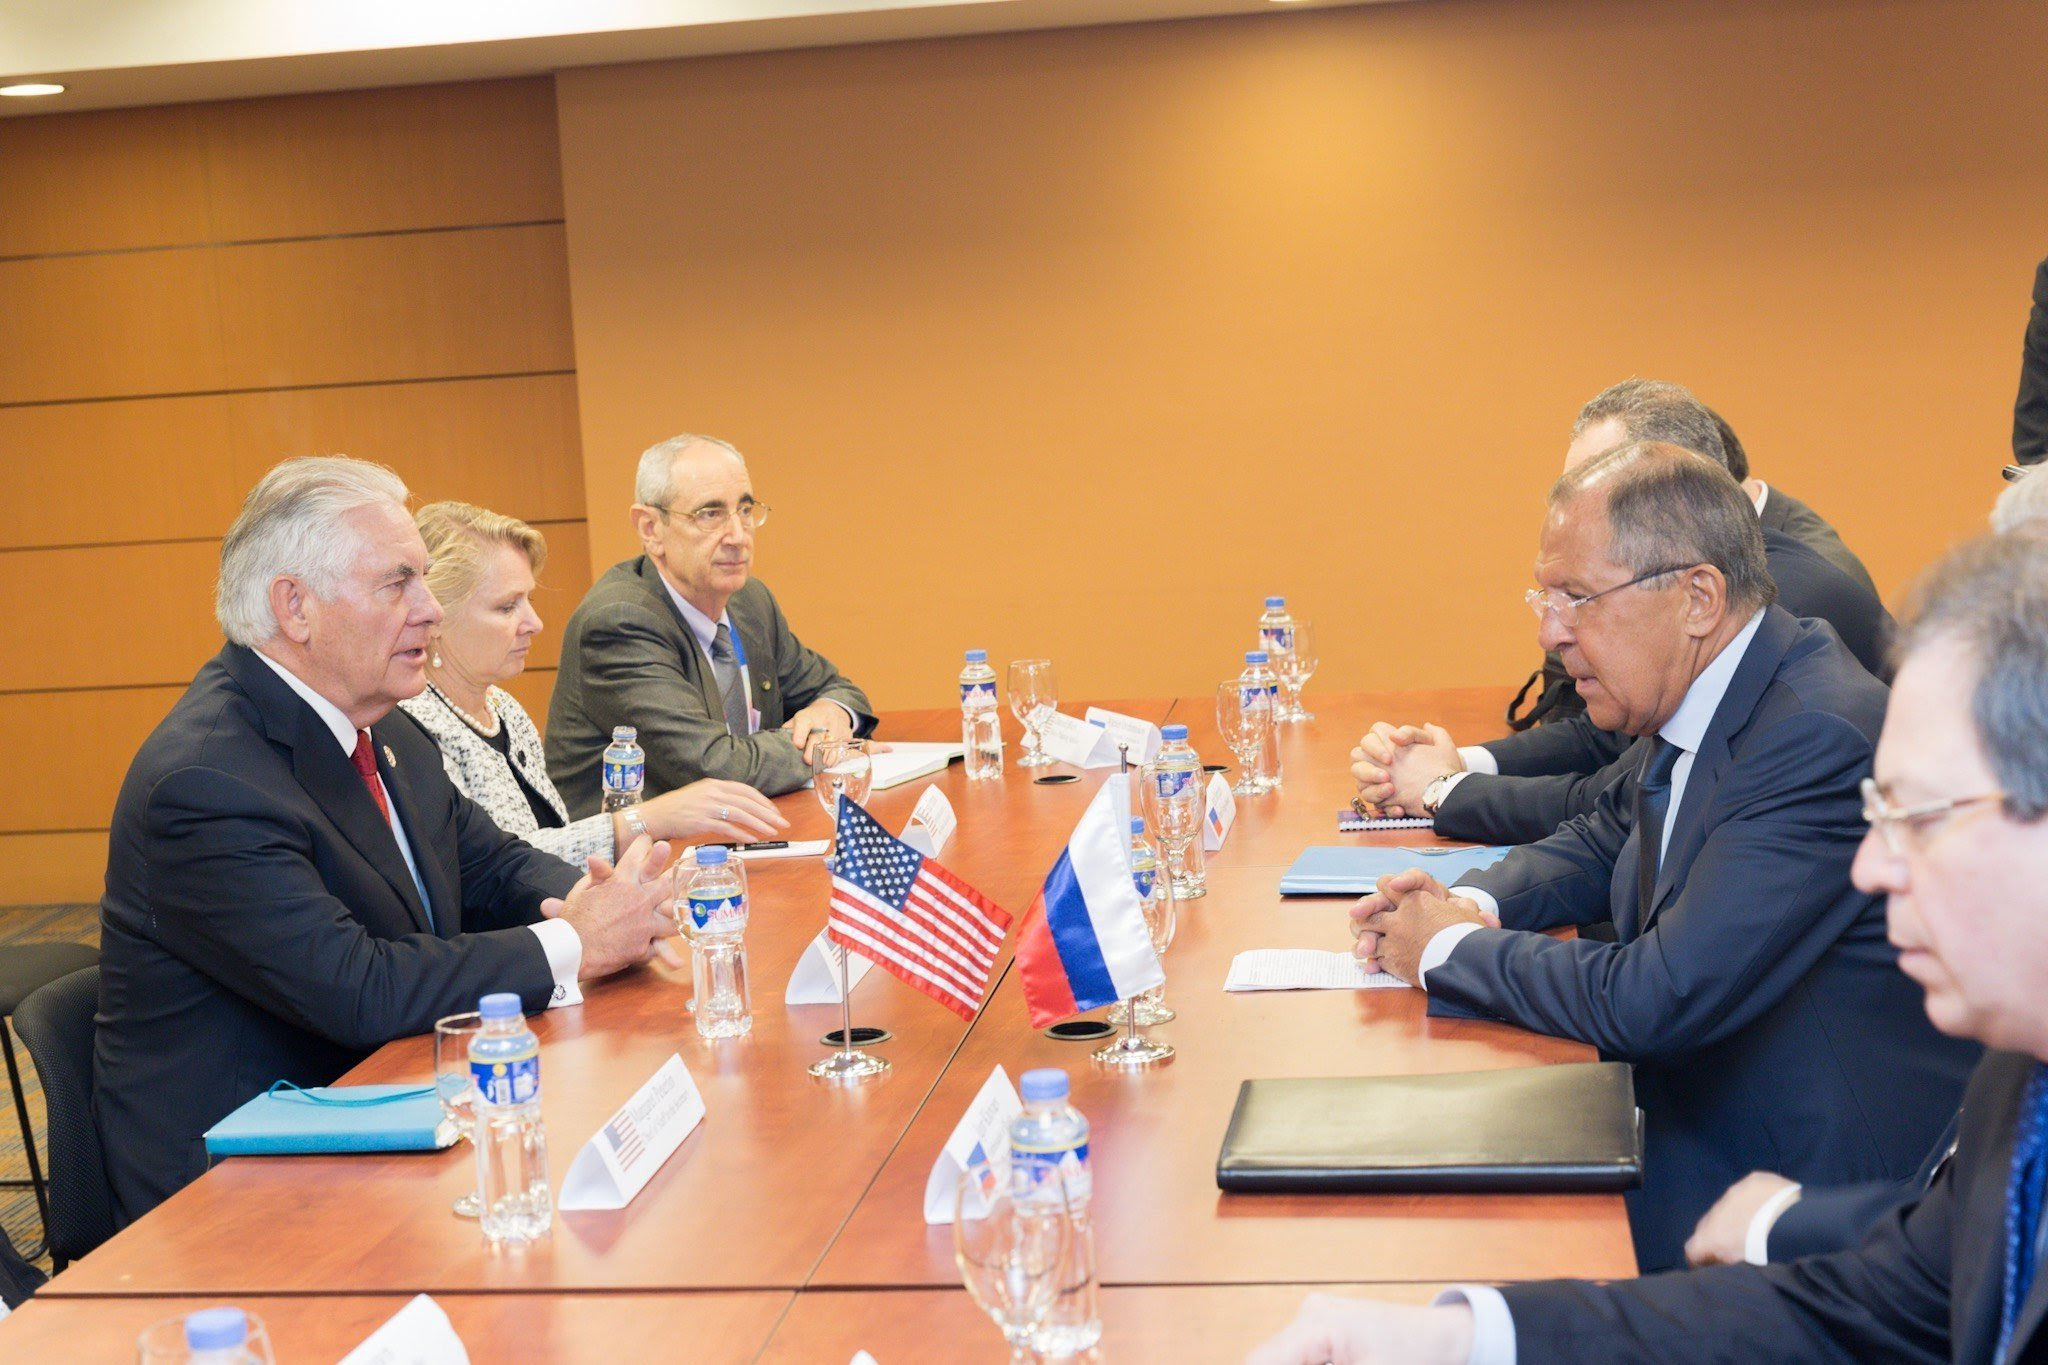 U.S. Secretary of State Rex Tillerson, left, meets Russian Foreign Minister Sergei Lavrov, second from right, on the sidelines of the ASEAN Foreign Ministers' Meeting on Sunday.